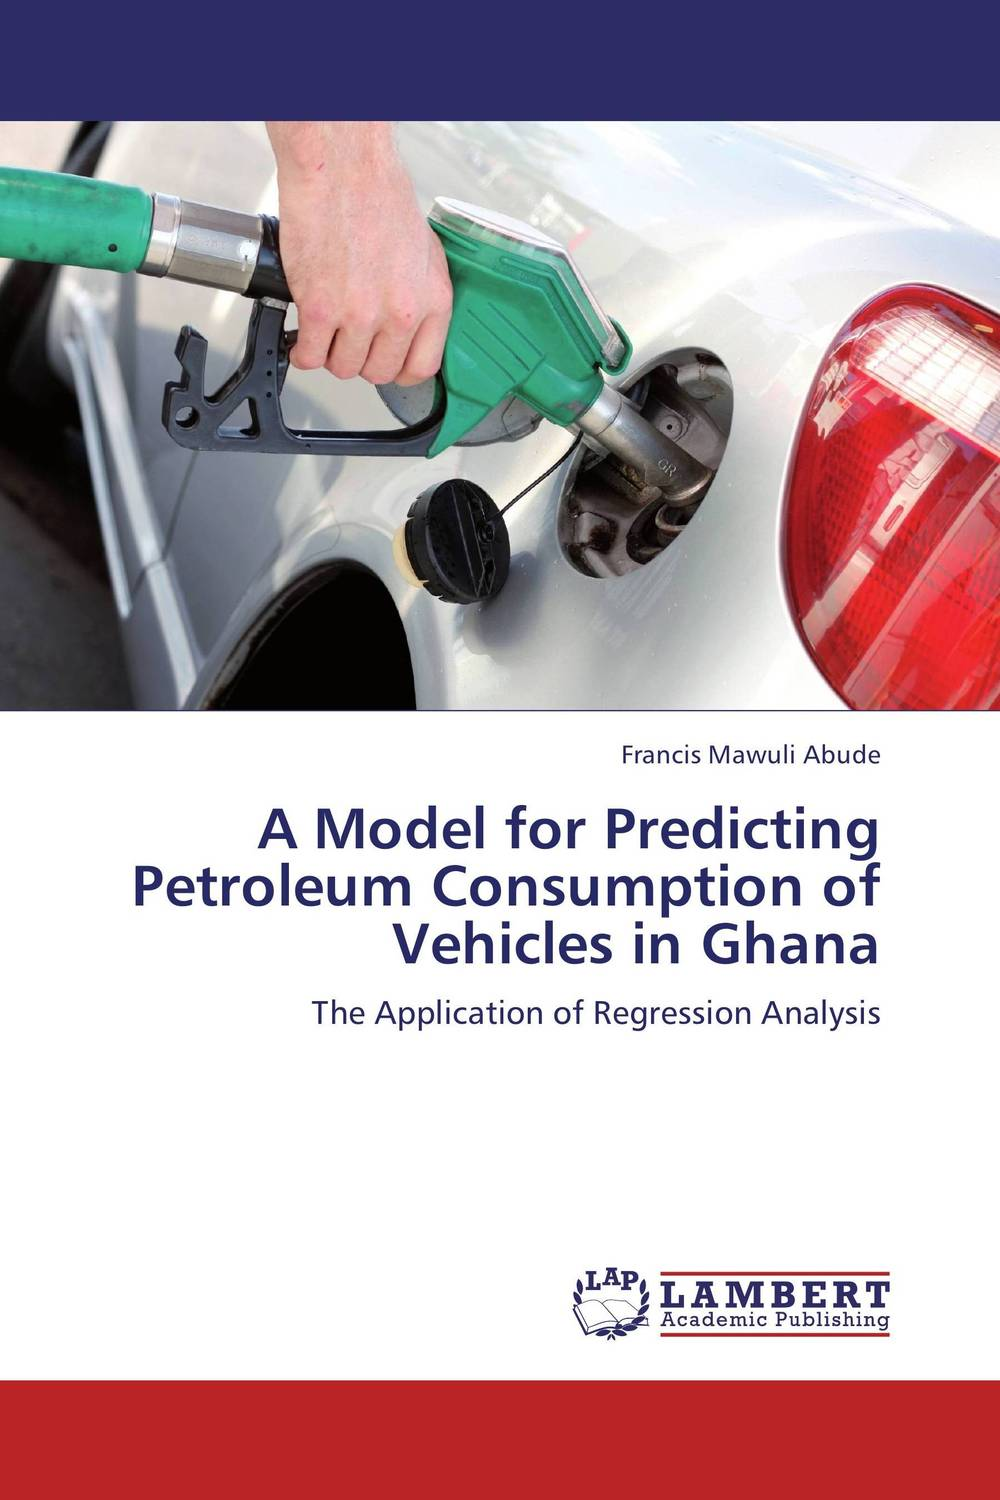 A Model for Predicting Petroleum Consumption of Vehicles in Ghana the new hot promotions 1 30 military vehicles dongfeng 11a missile launch vehicle model alloy office decoration